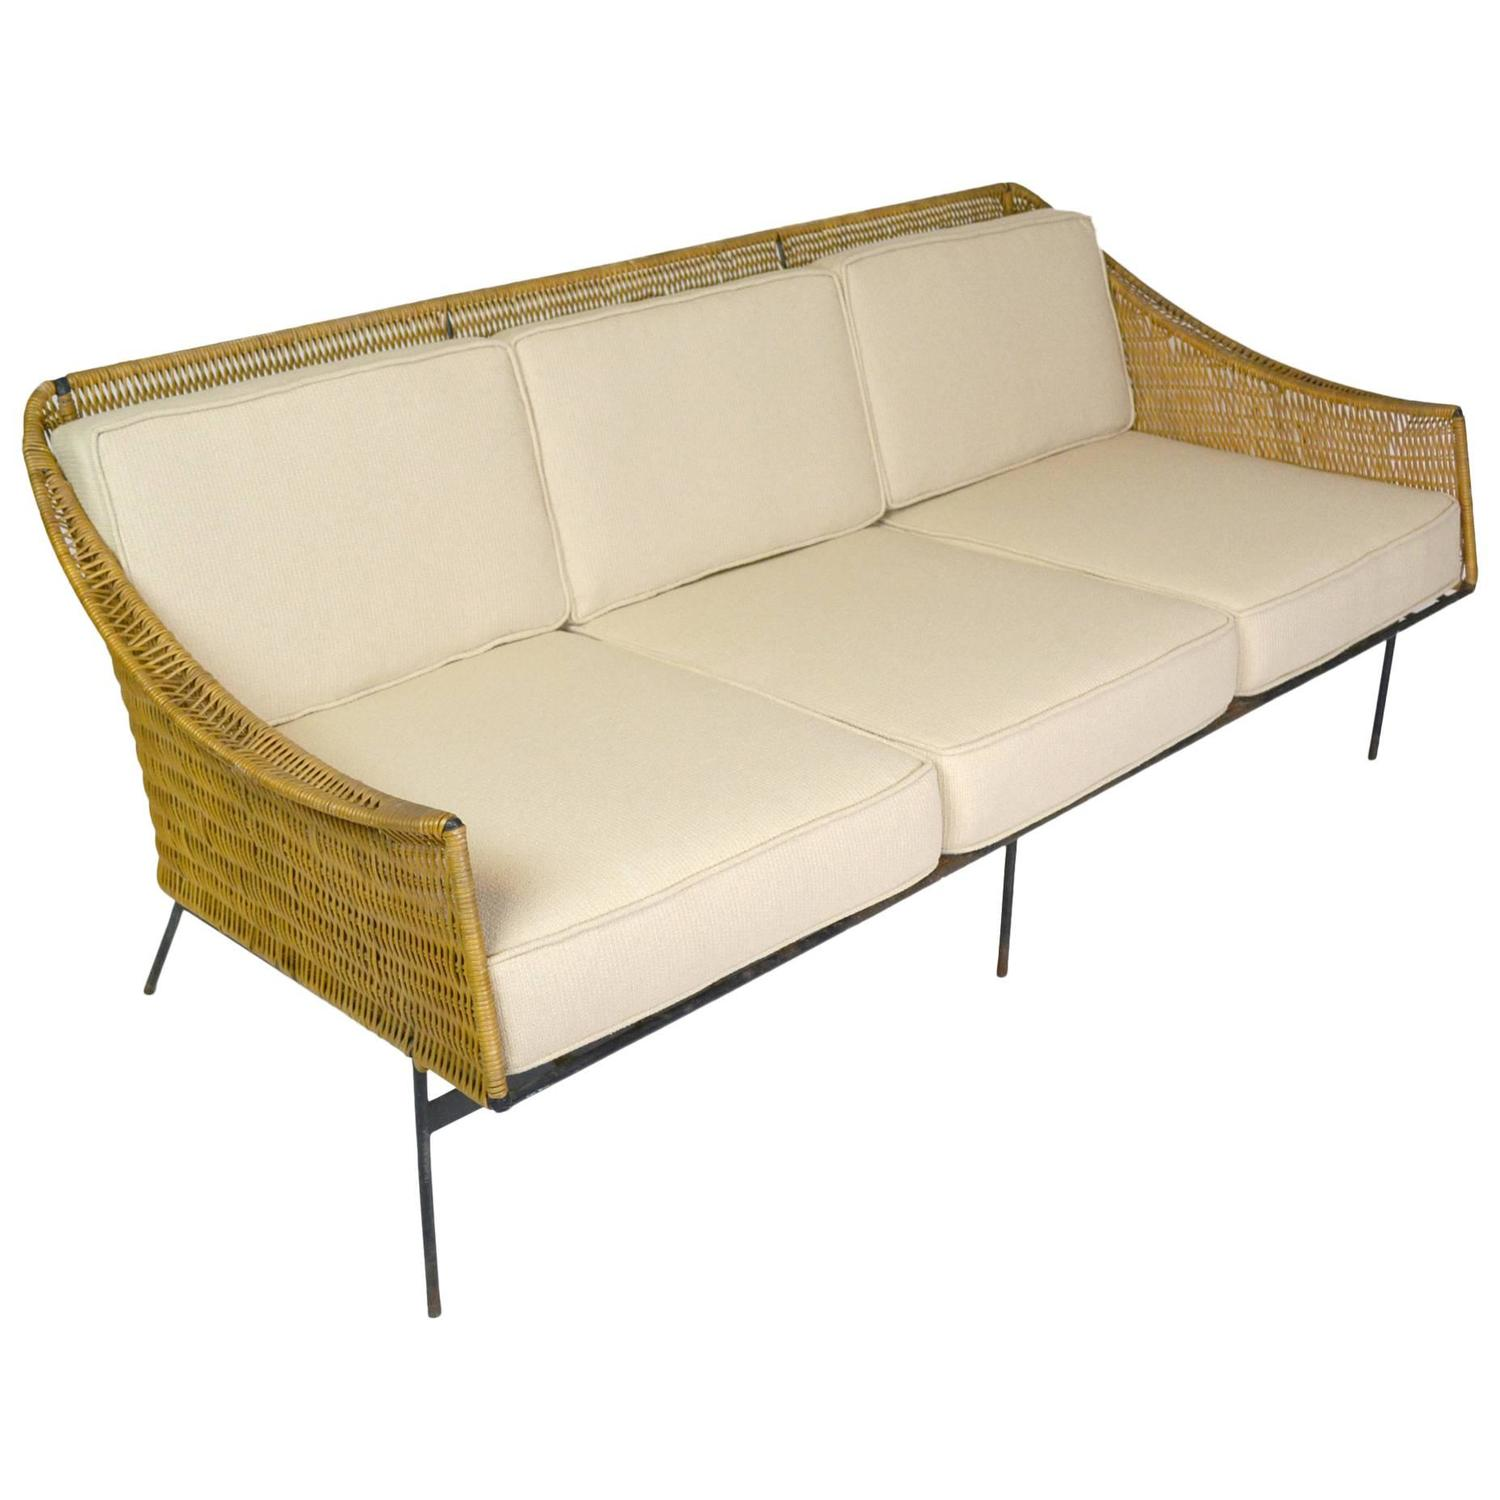 Genial Mid Century Modern Rattan And Wrought Iron Sofa At 1stdibs